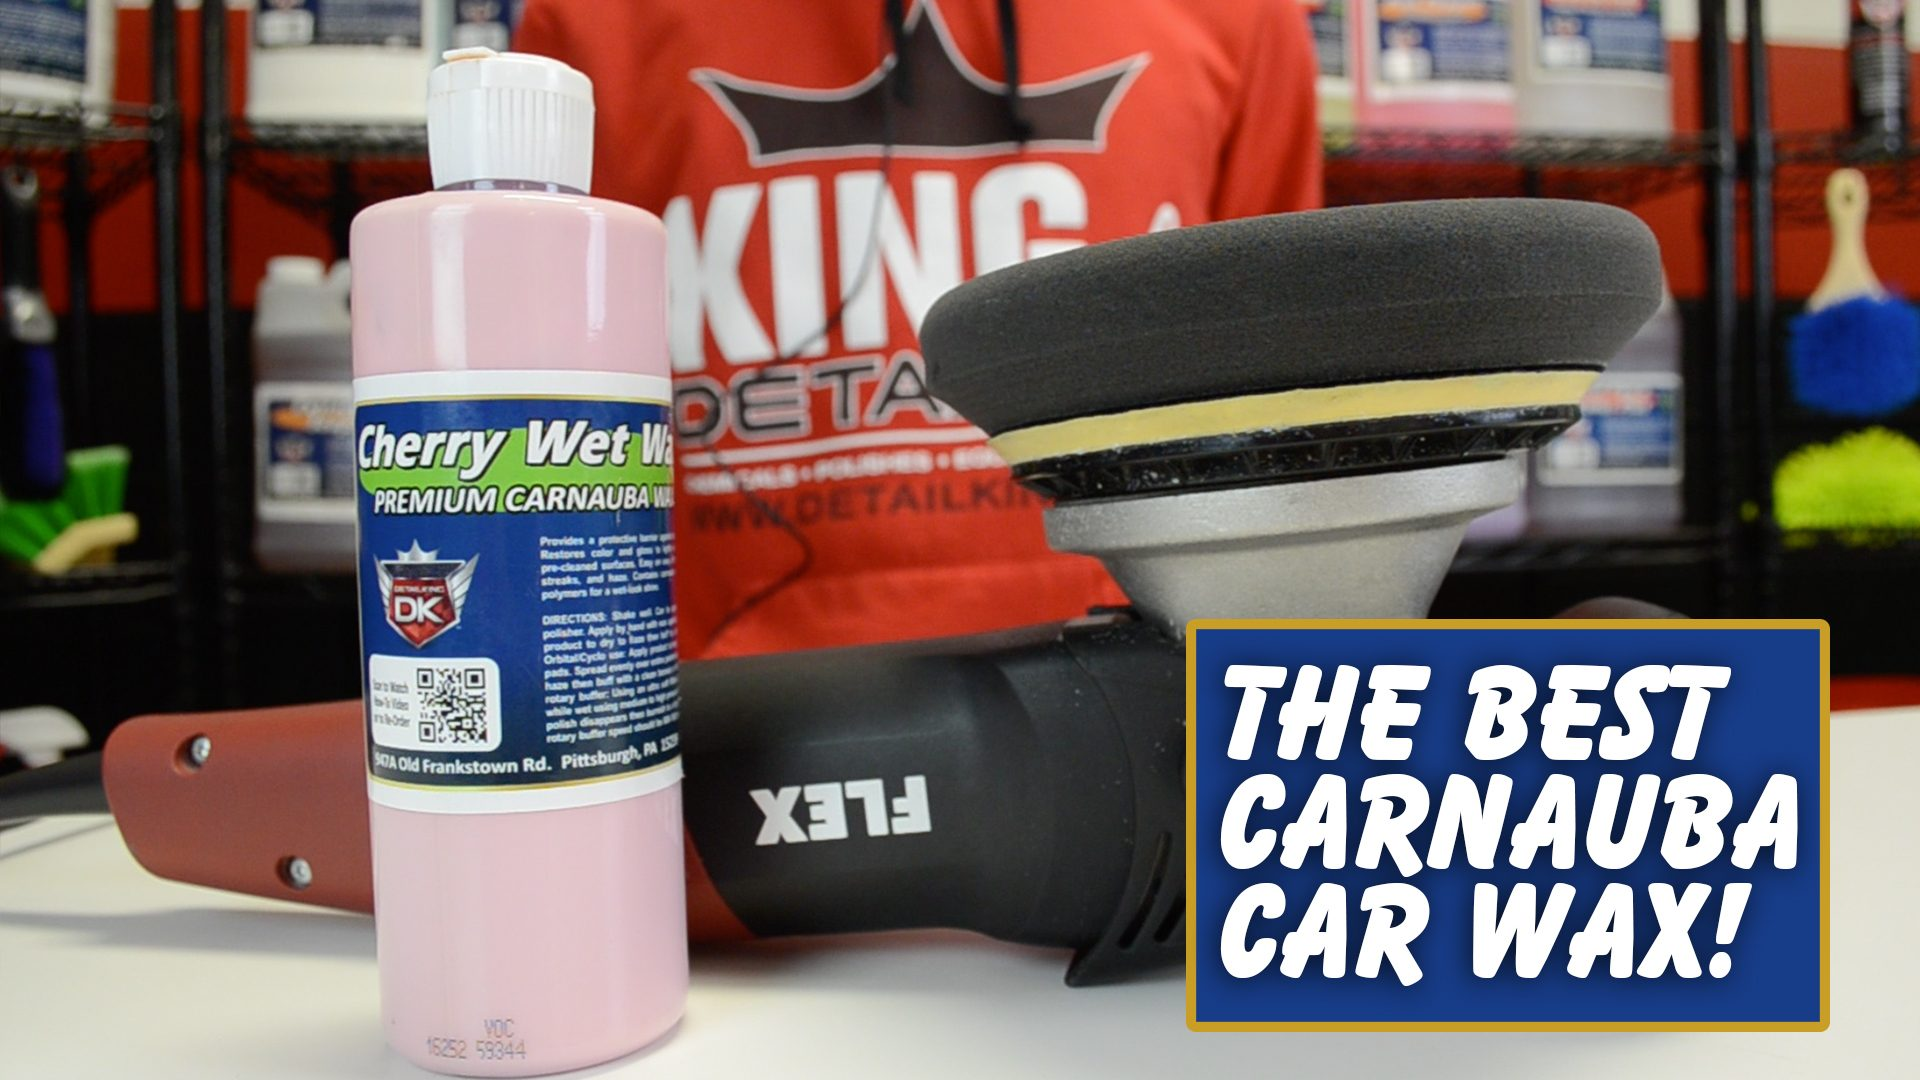 Detail King's Cherry Wet Wax